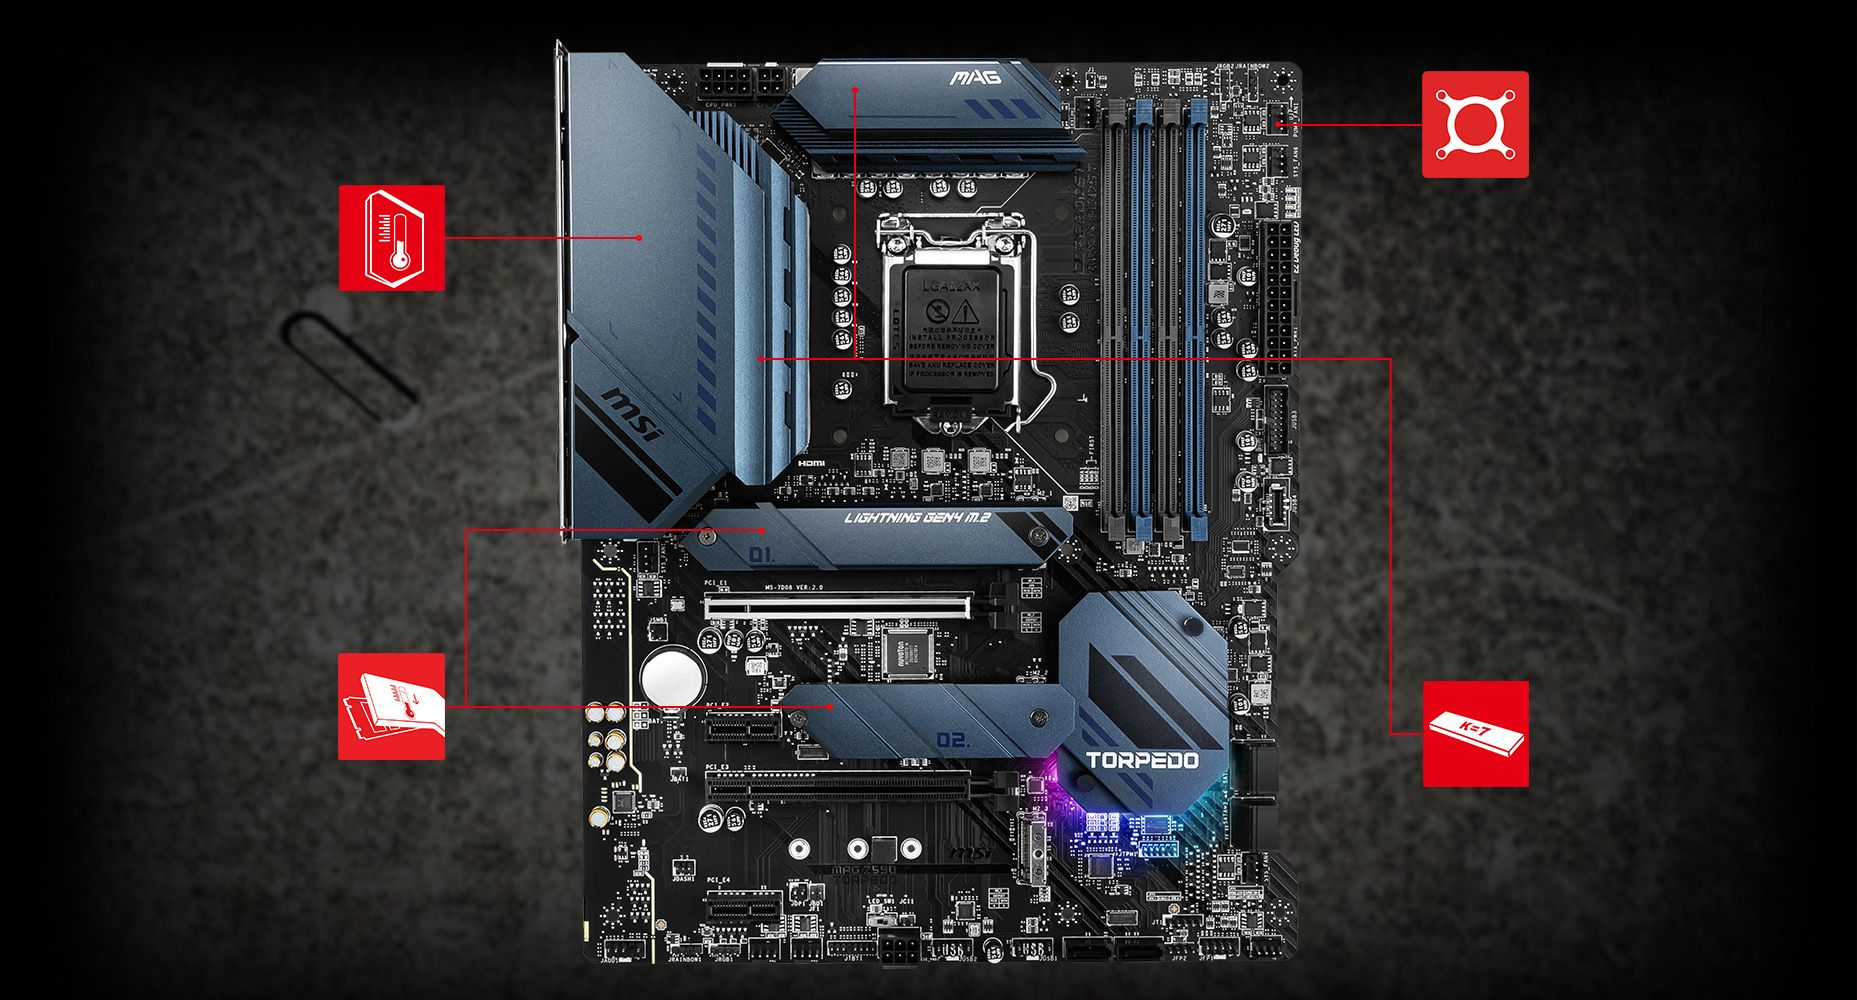 MSI MAG Z590 TORPEDO THERMAL overview